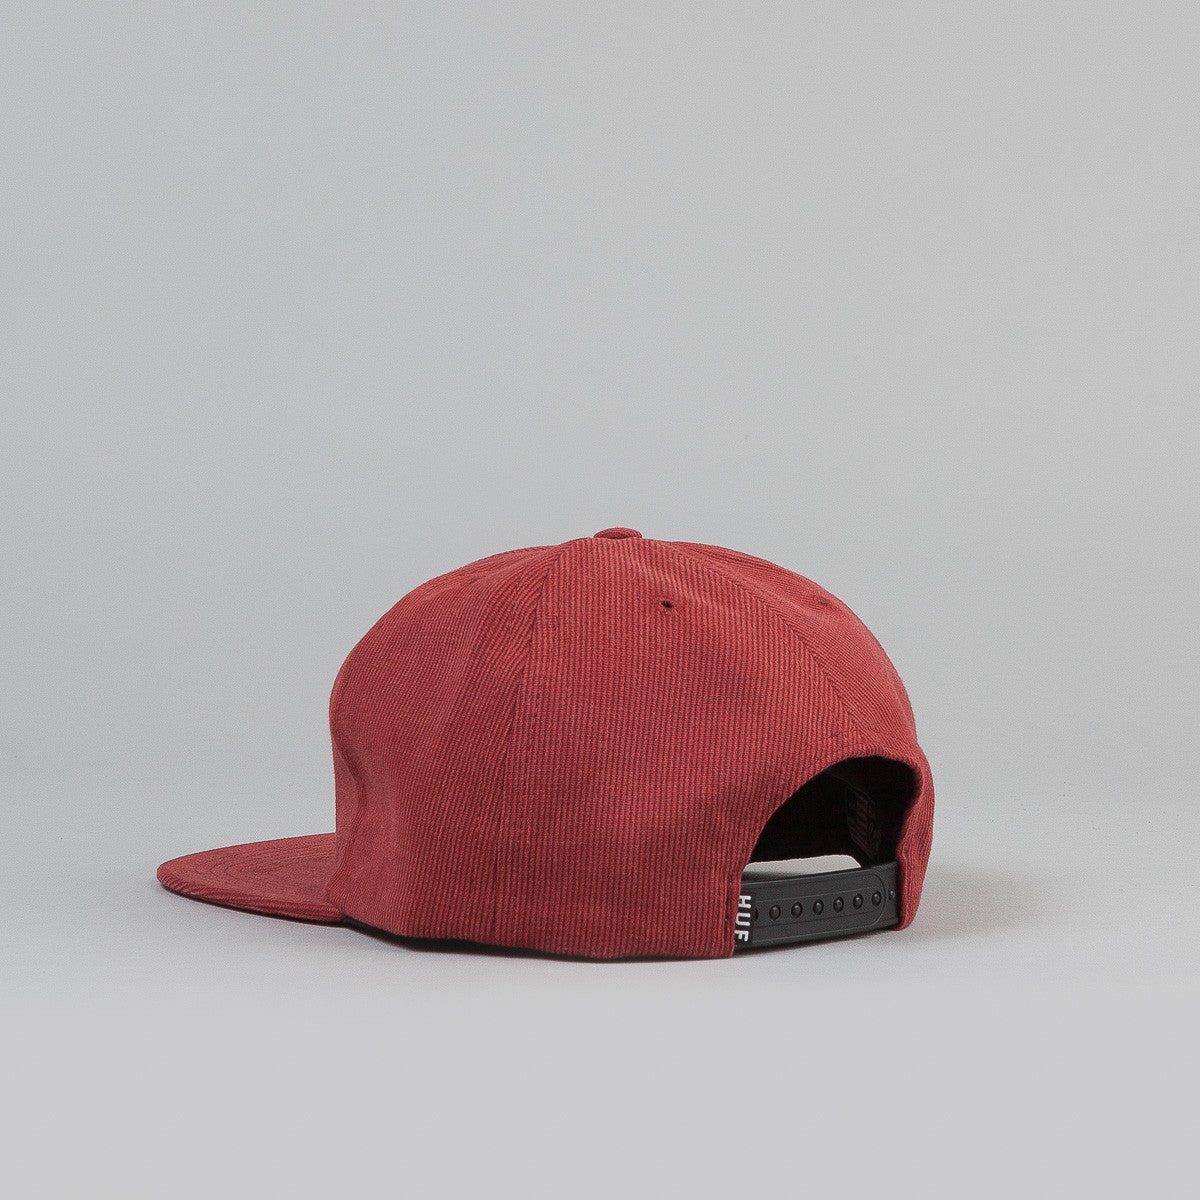 HUF Bedford Triple Triangle Snapback Cap - Rust